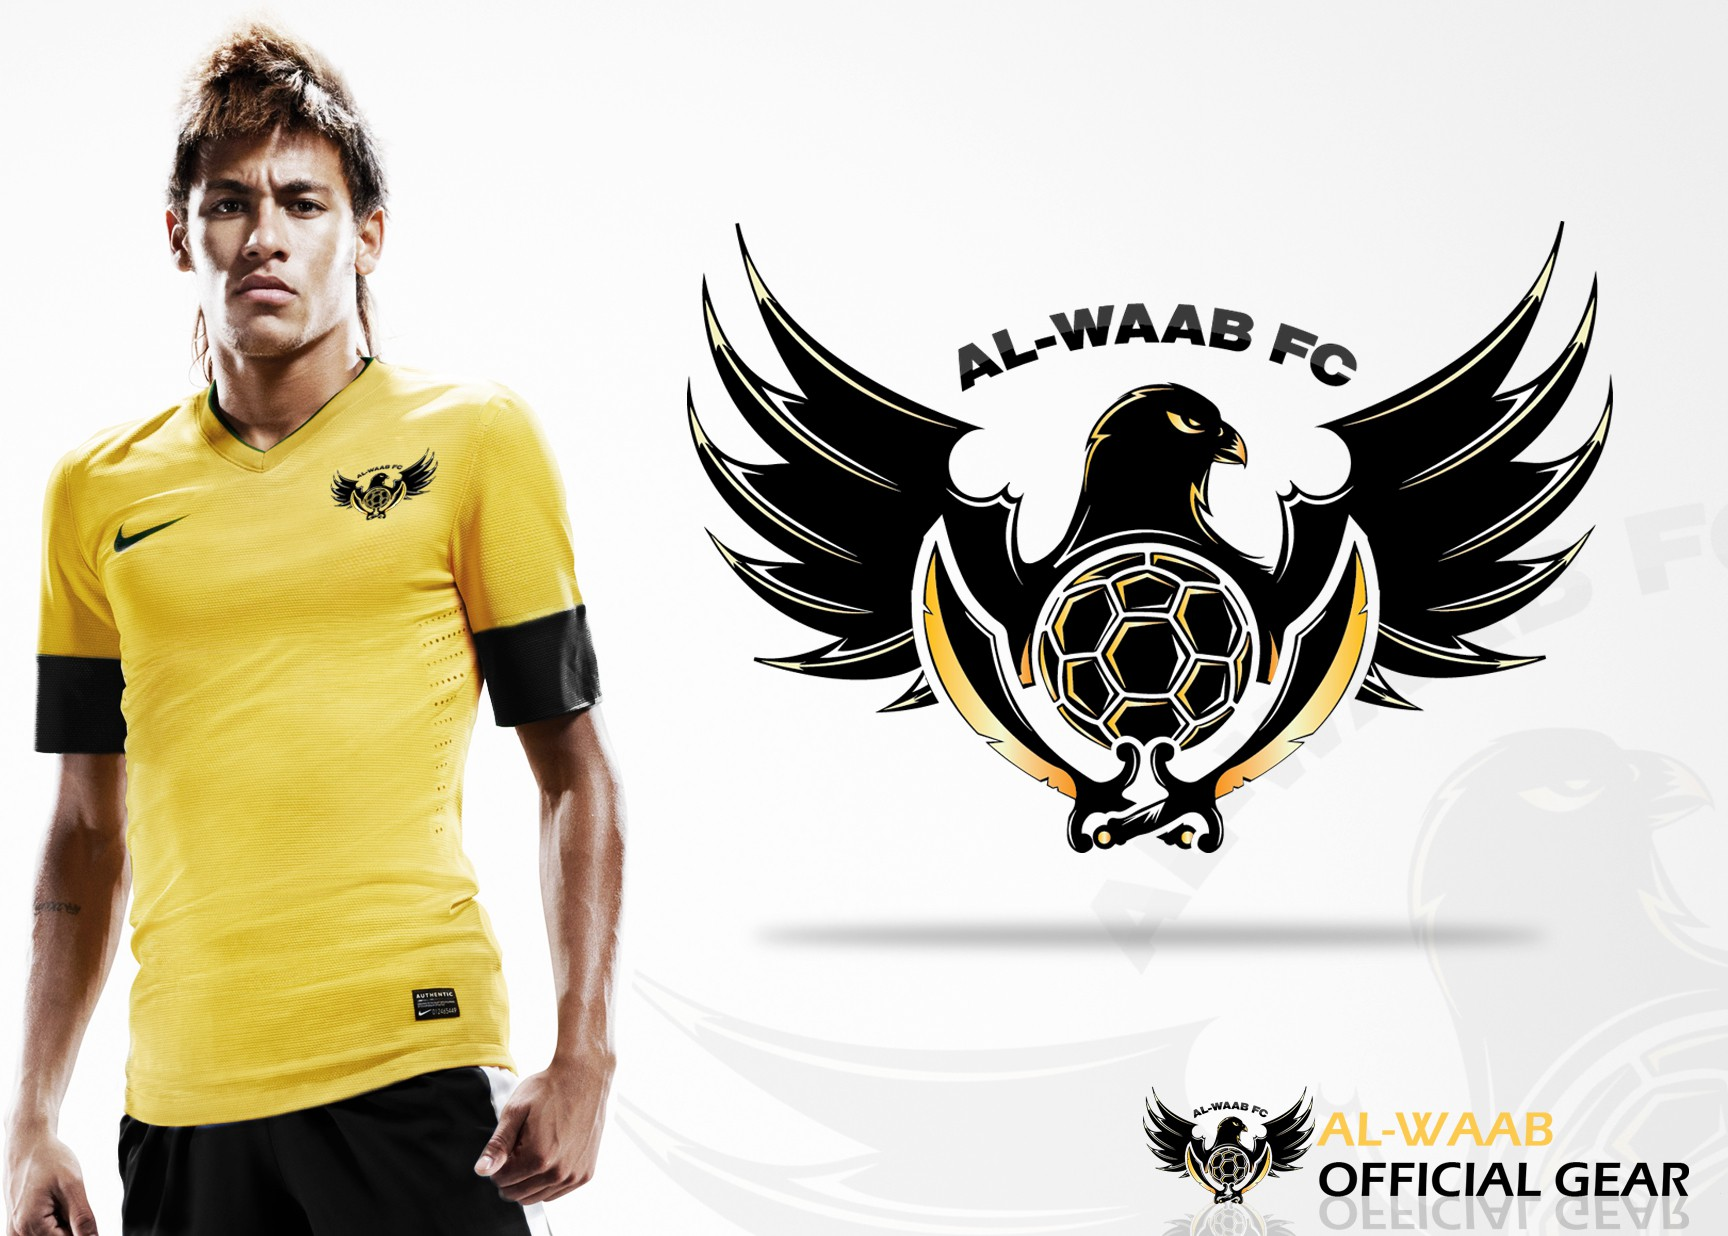 Create the next clothing or merchandise design for Al-Waab FC